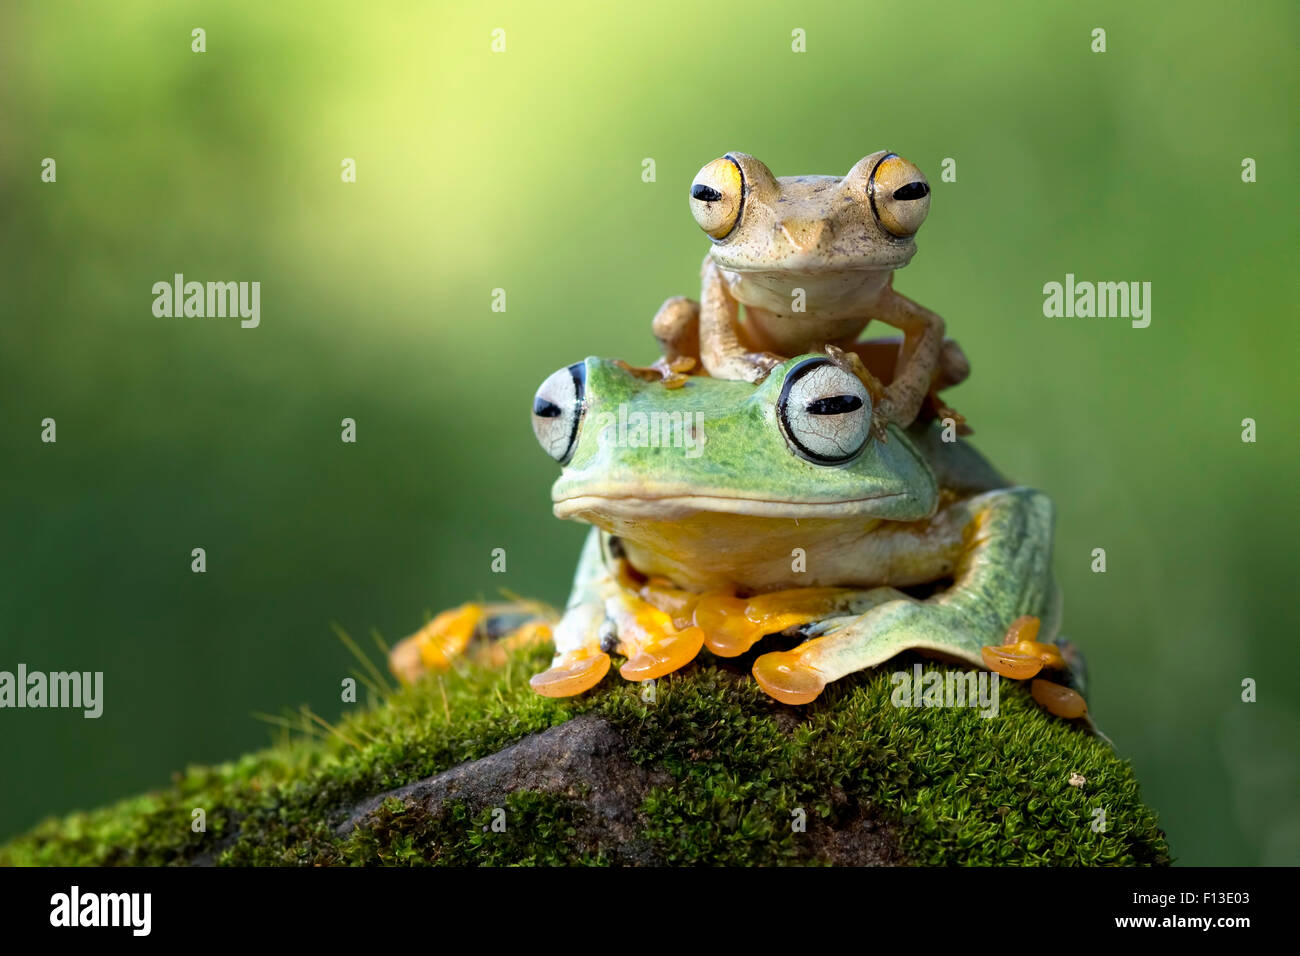 Small frog sitting on another frog - Stock Image